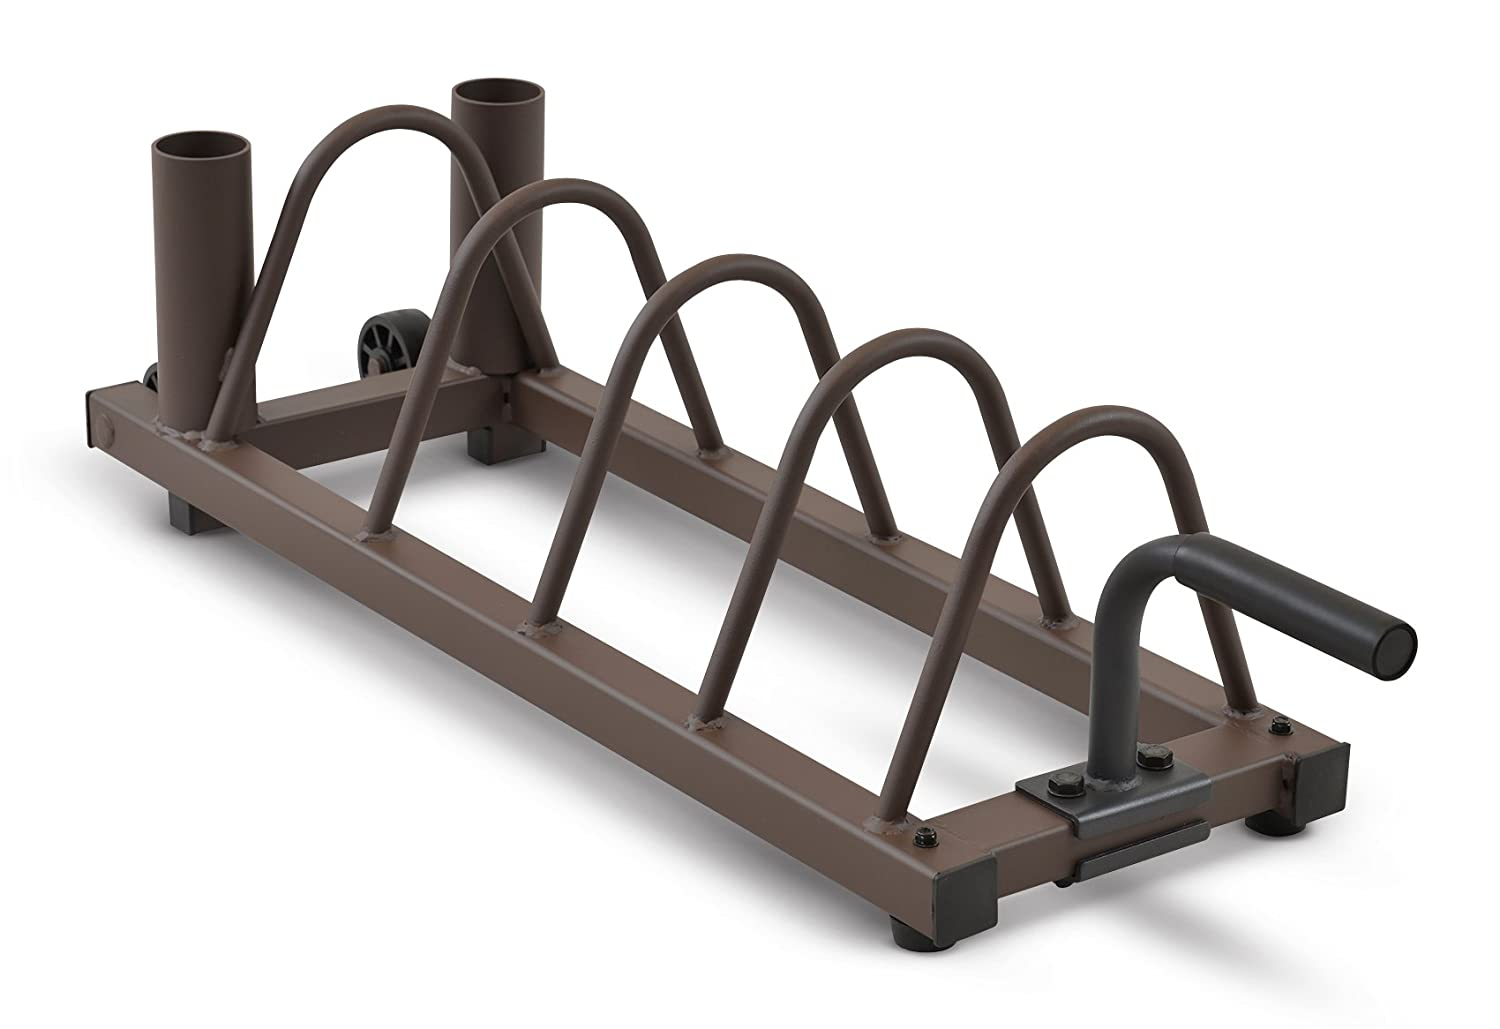 Steelbody Horizontal Plate and Olympic Bar Rack Organizer with Steel Frame and Transport Wheels STB-0130